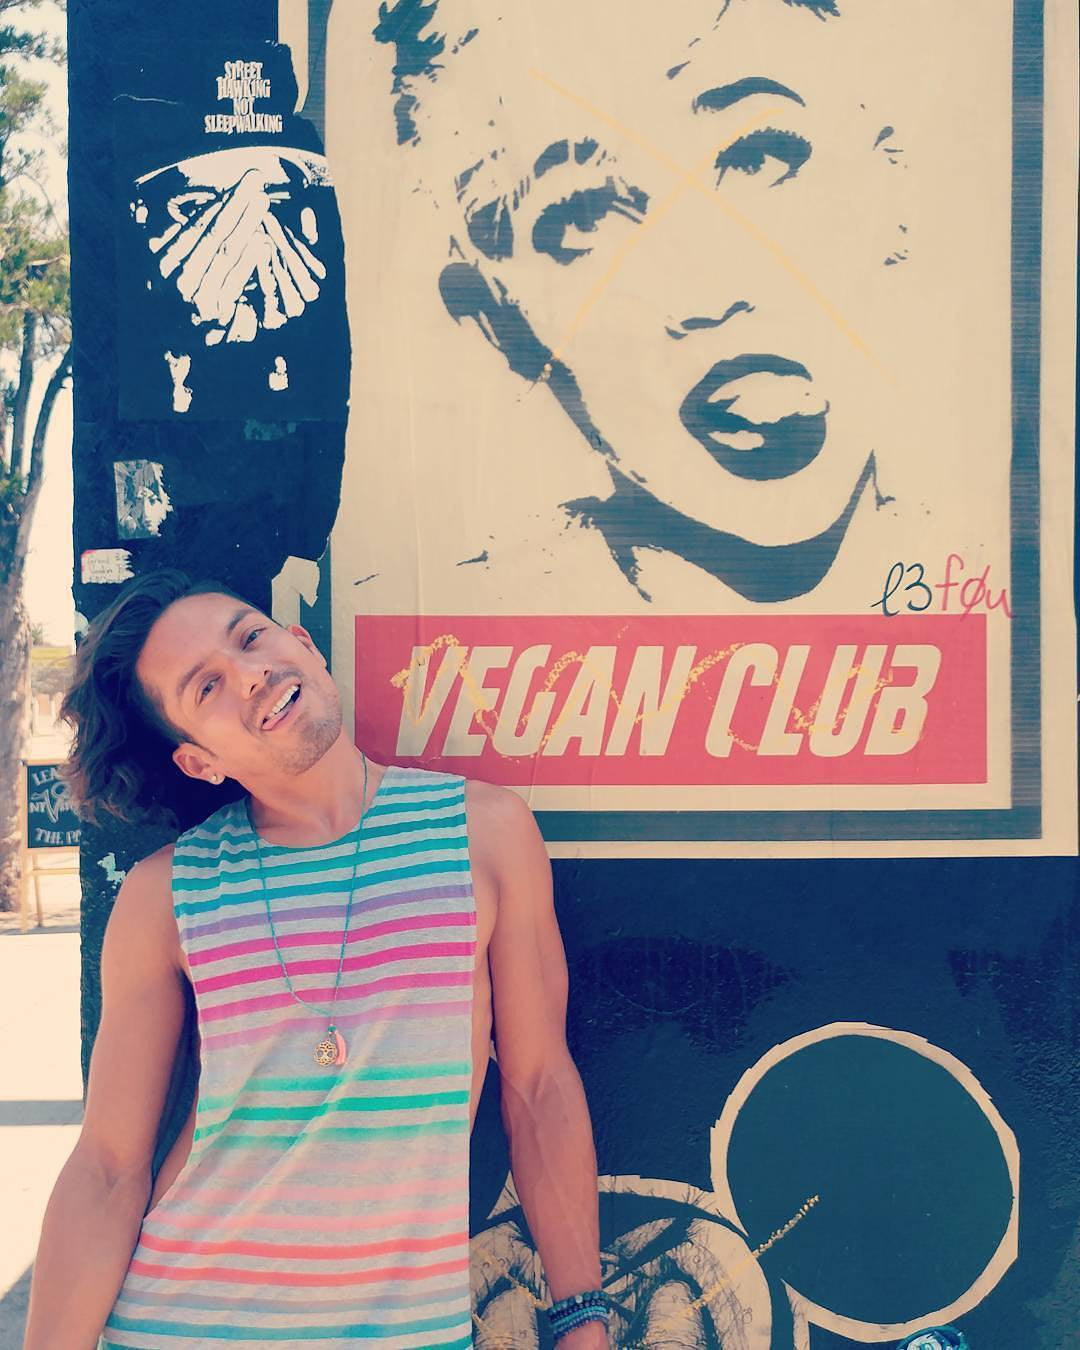 Street Art NewsPrint Poster Vegan Club featuring Miley Cyrus Signed L3f0u - models @ashleighhobbs @lrk_kung @carlosgogo